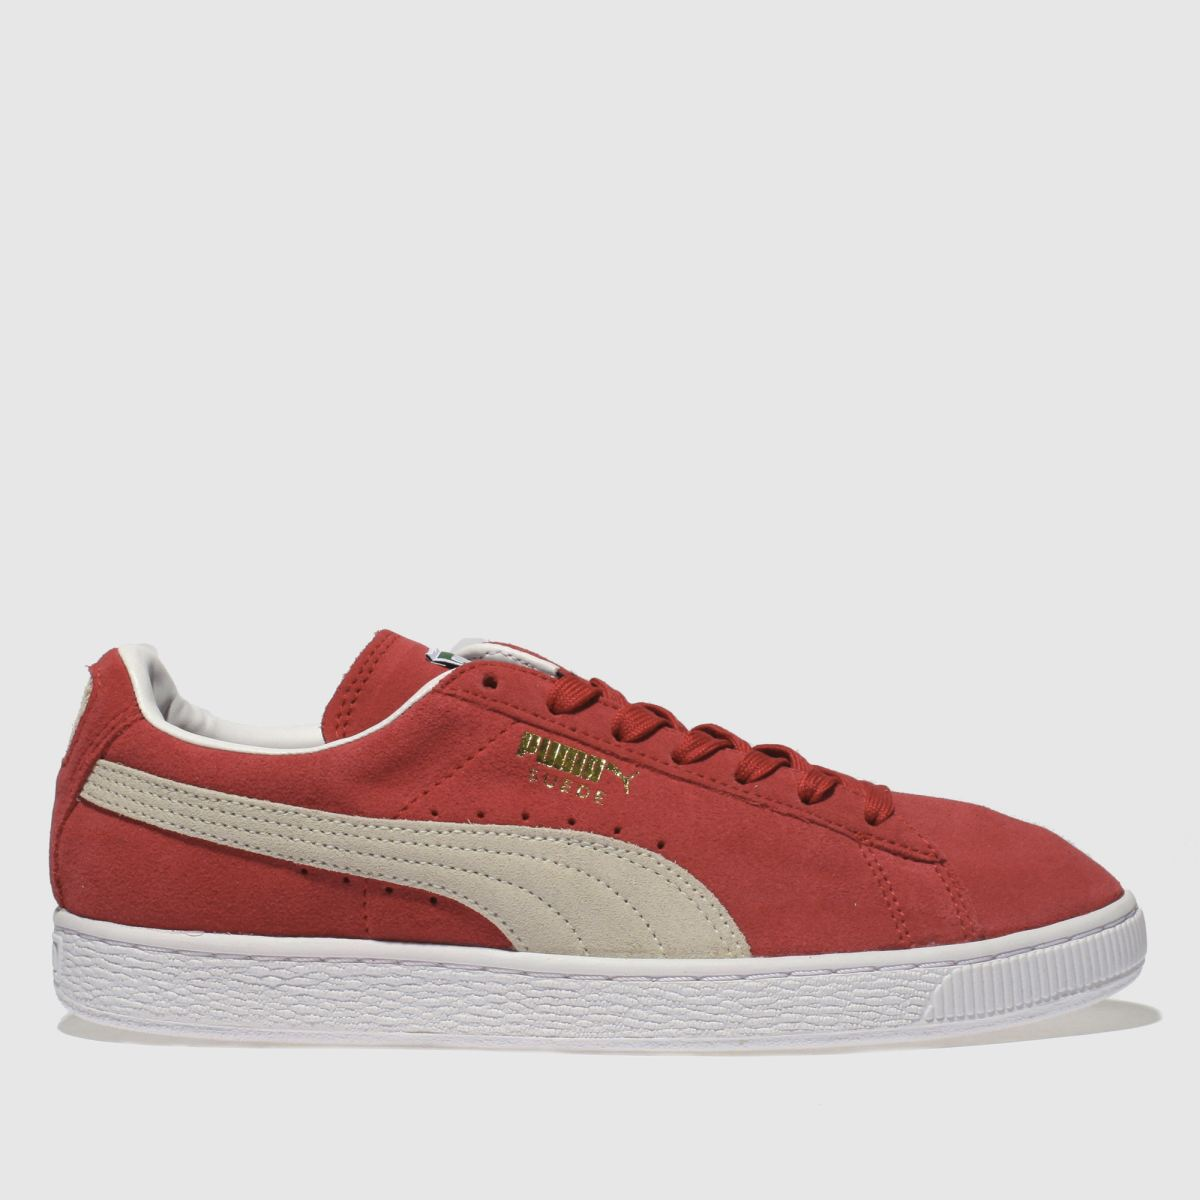 Puma White & Red Suede Classic Trainers